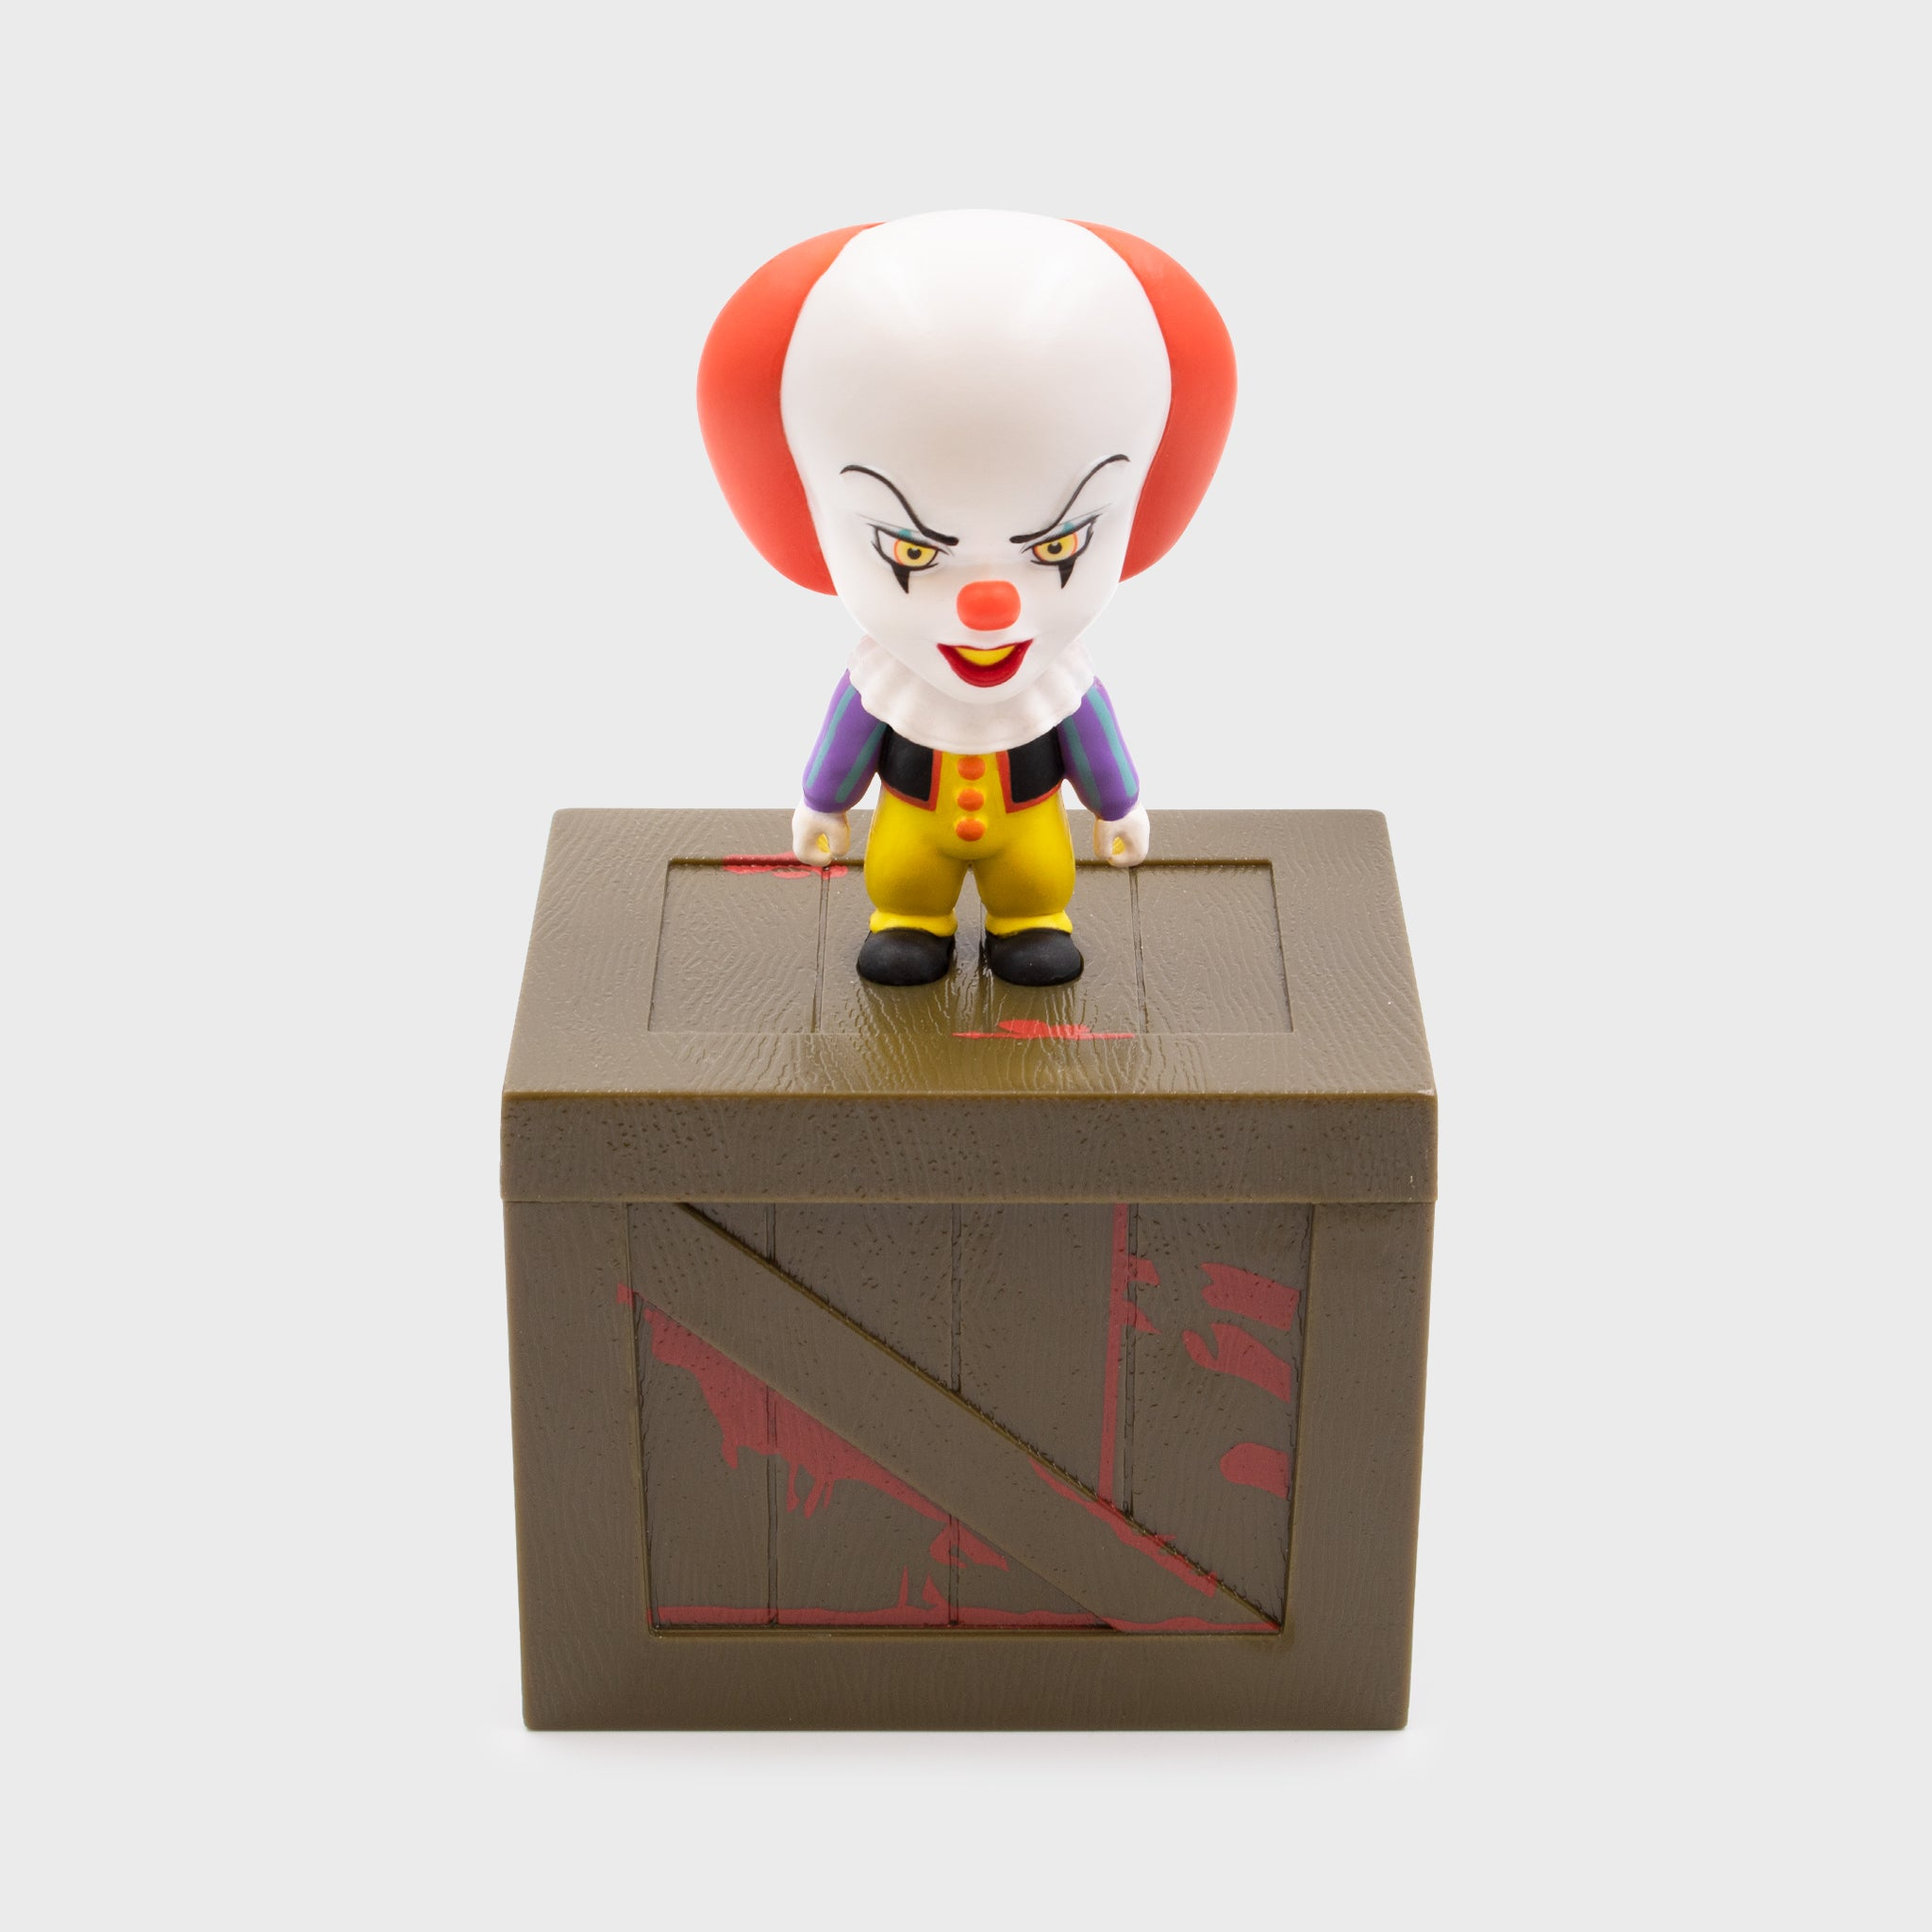 smols culturefly horror movies films classics monsters scary it pennywise collectibles blind bags mystery mini figurines collection